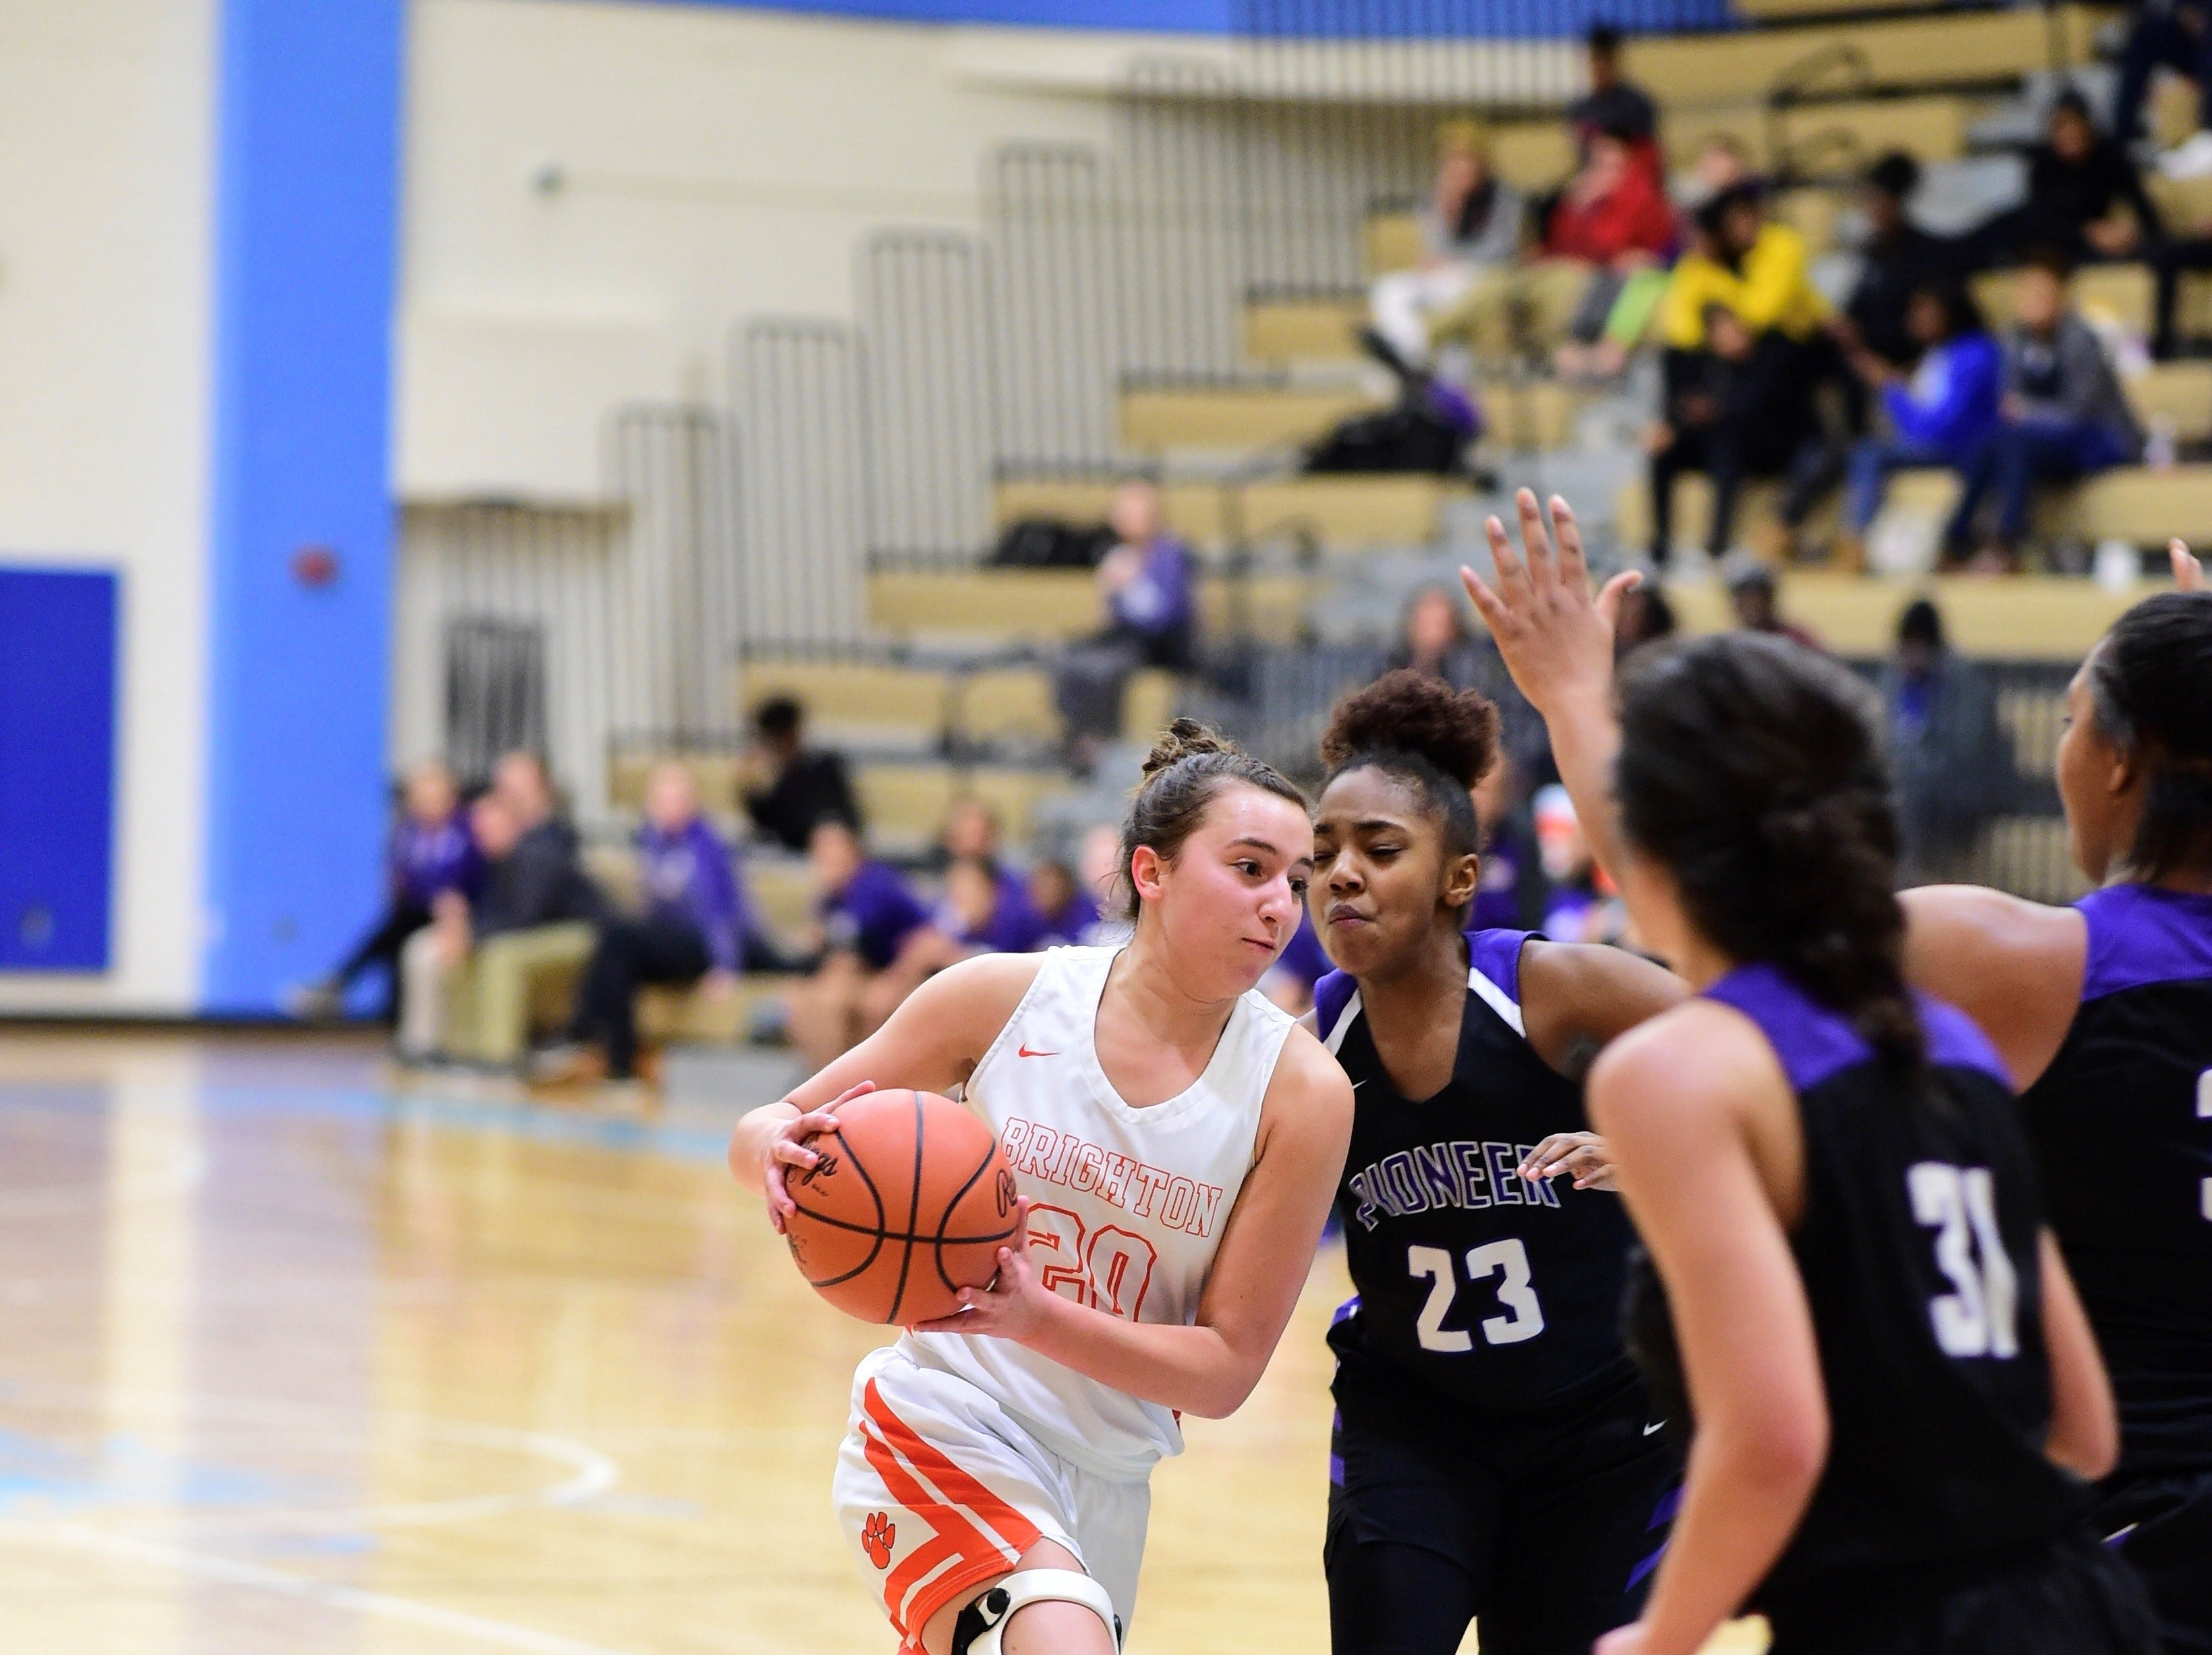 Brighton's Isabelle Viau drives to the hoop against Ann Arbor Pioneer on March 11, 2019.